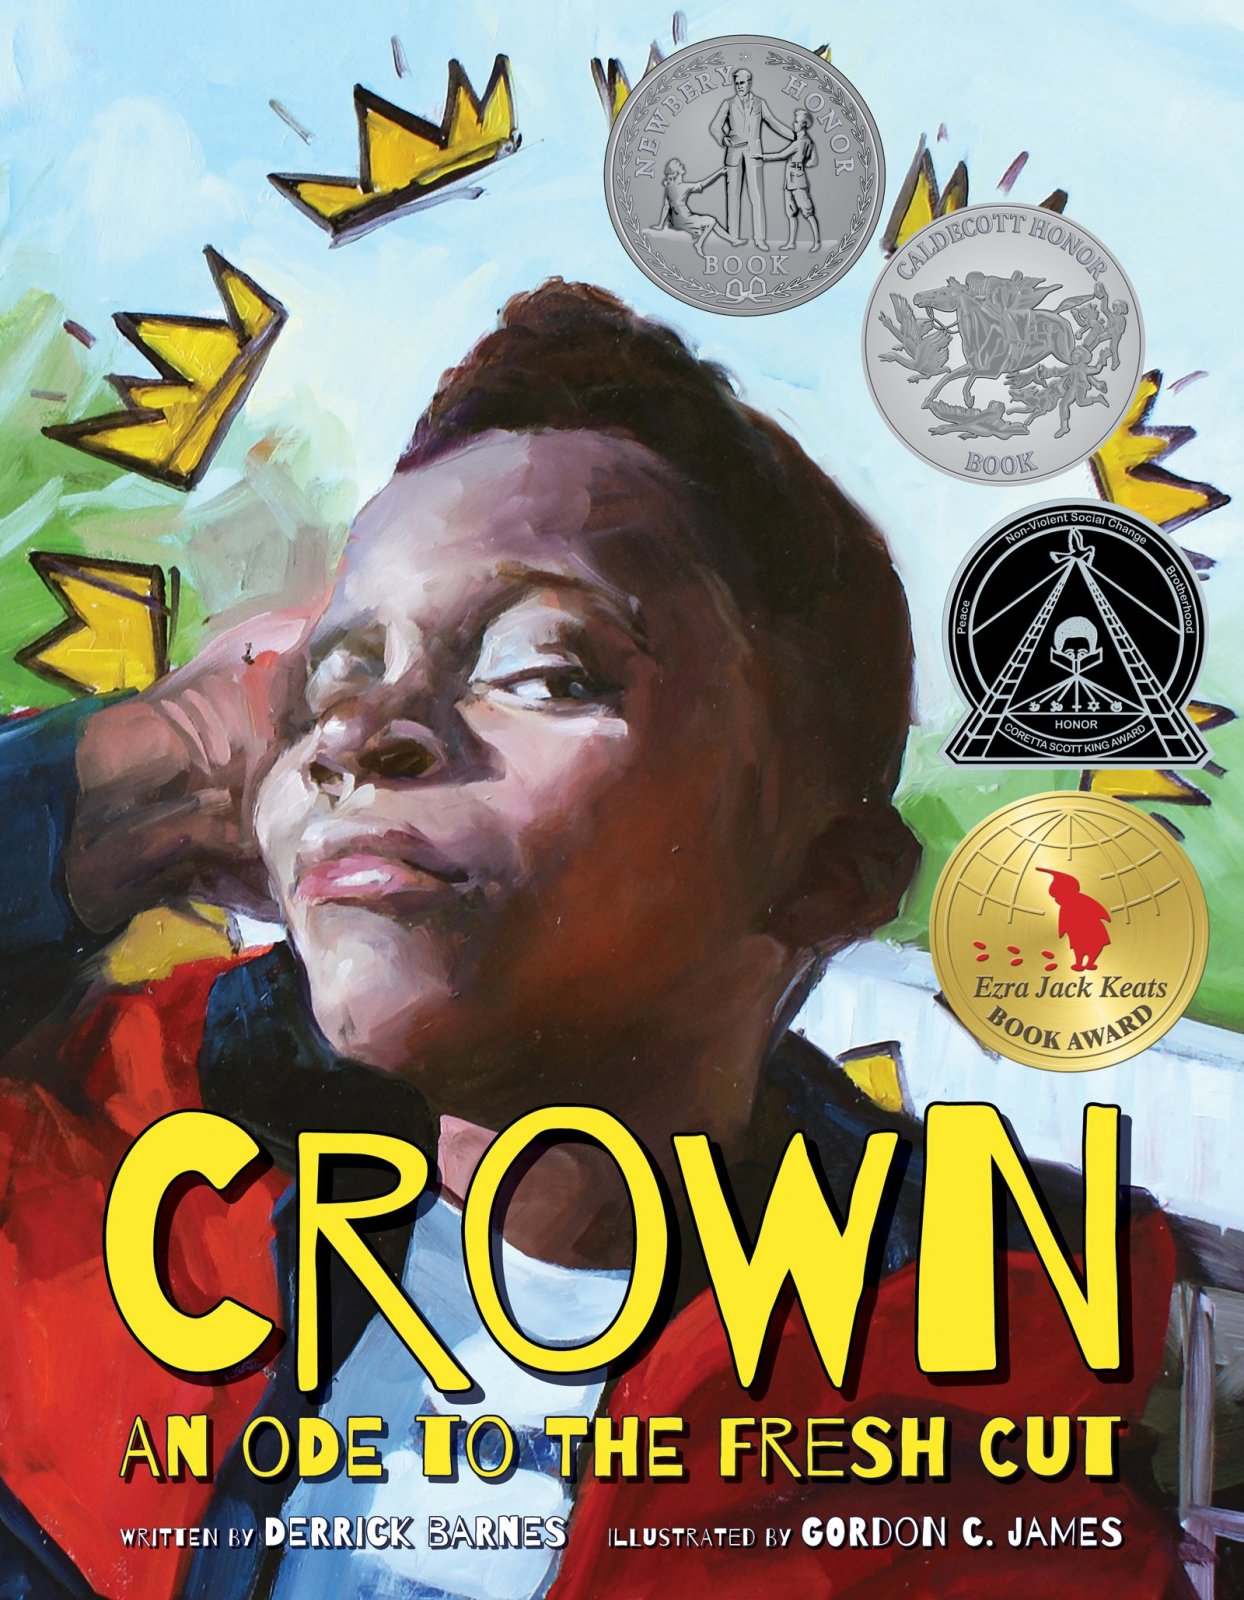 Crown: An Ode To the Fresh Cut by Derrick Barnes